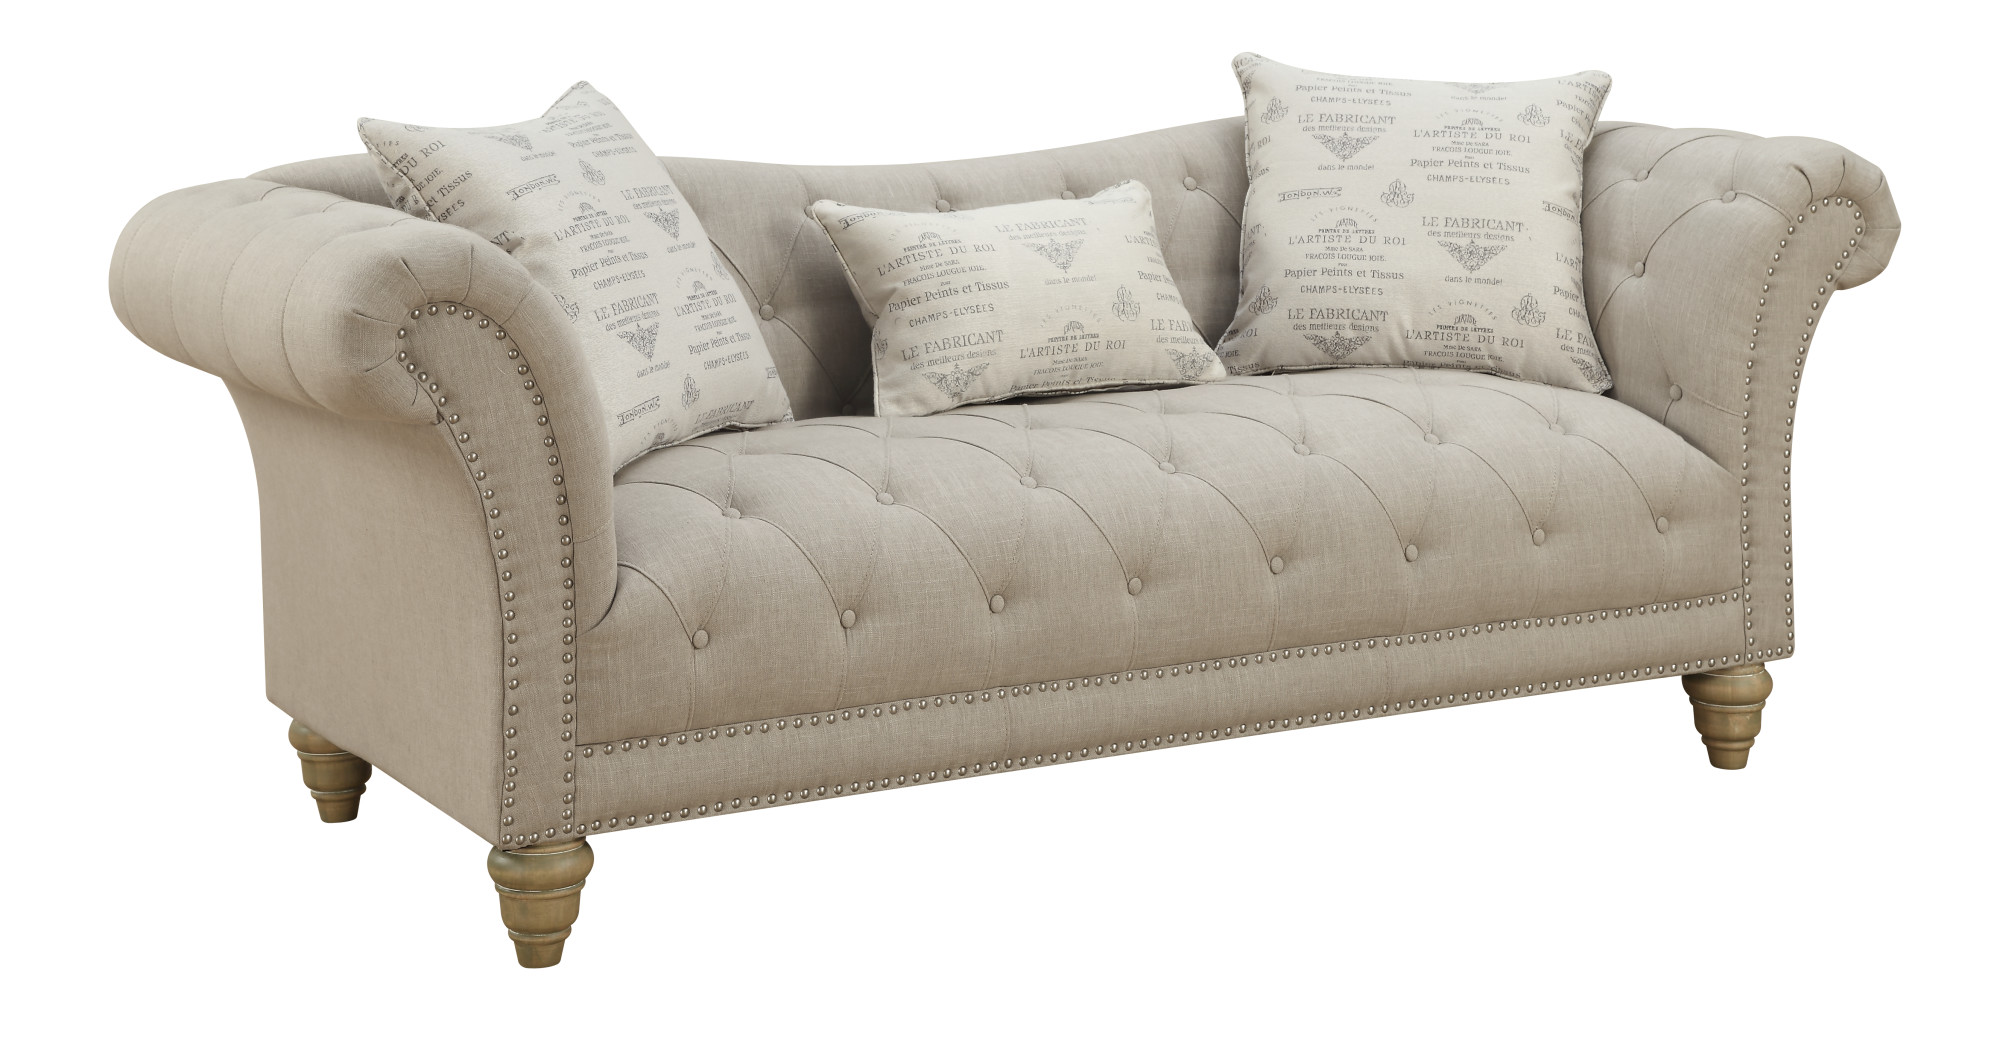 Emerald Home Hutton Ii Thunder Bella Gray 90 Sofa With Pillows On Tufting Nailhead Trim And Turned Legs